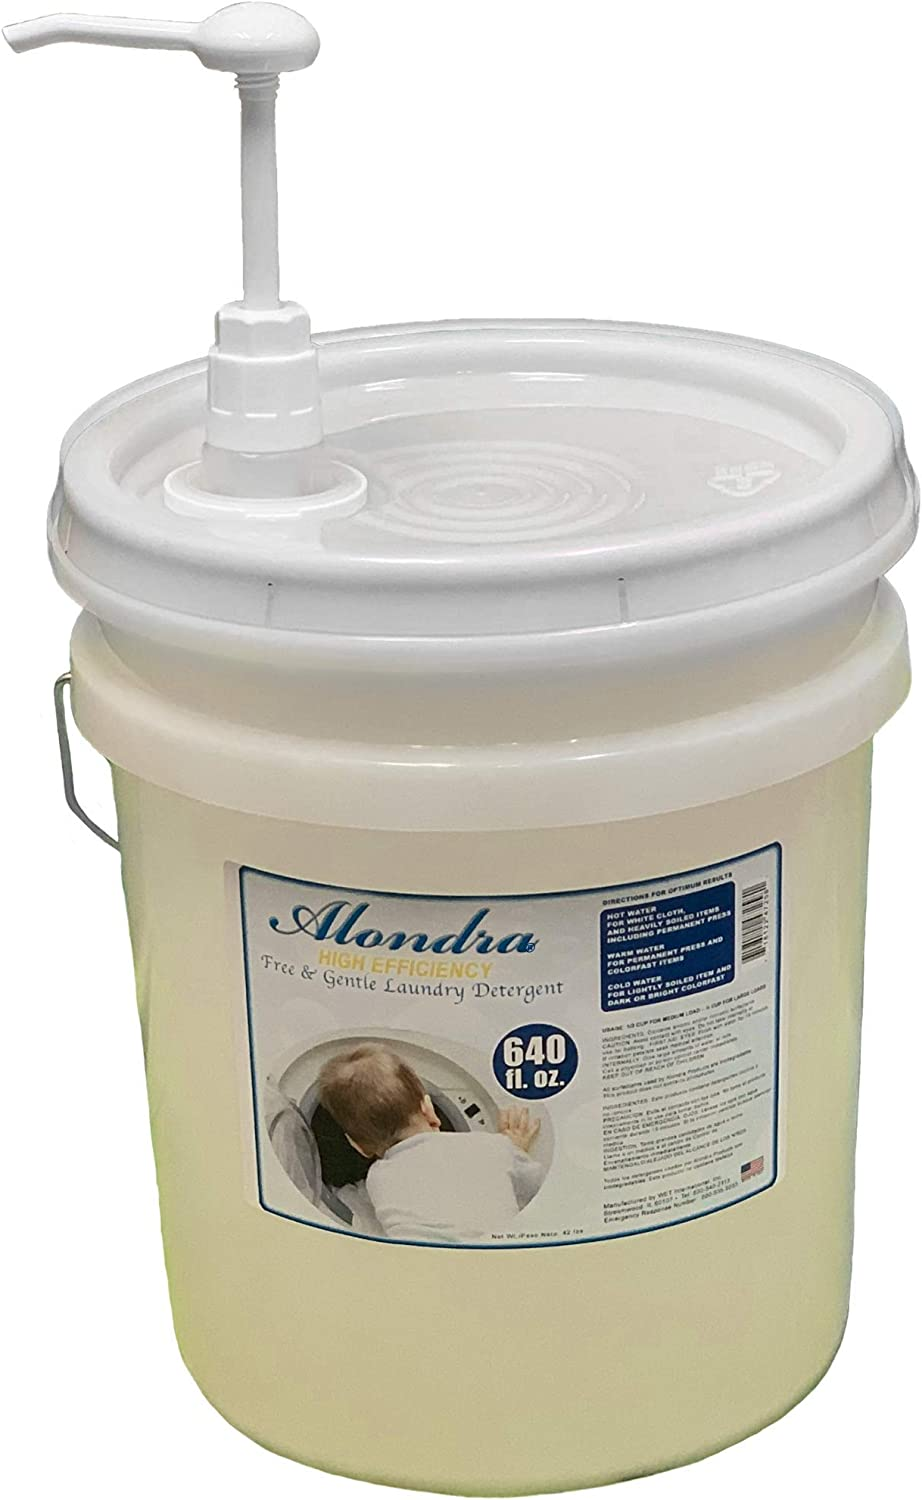 Alondra Sales of SALE items from new works Free Ranking TOP11 and Gentle Concentra Hypoallergenic Unscented Ultra